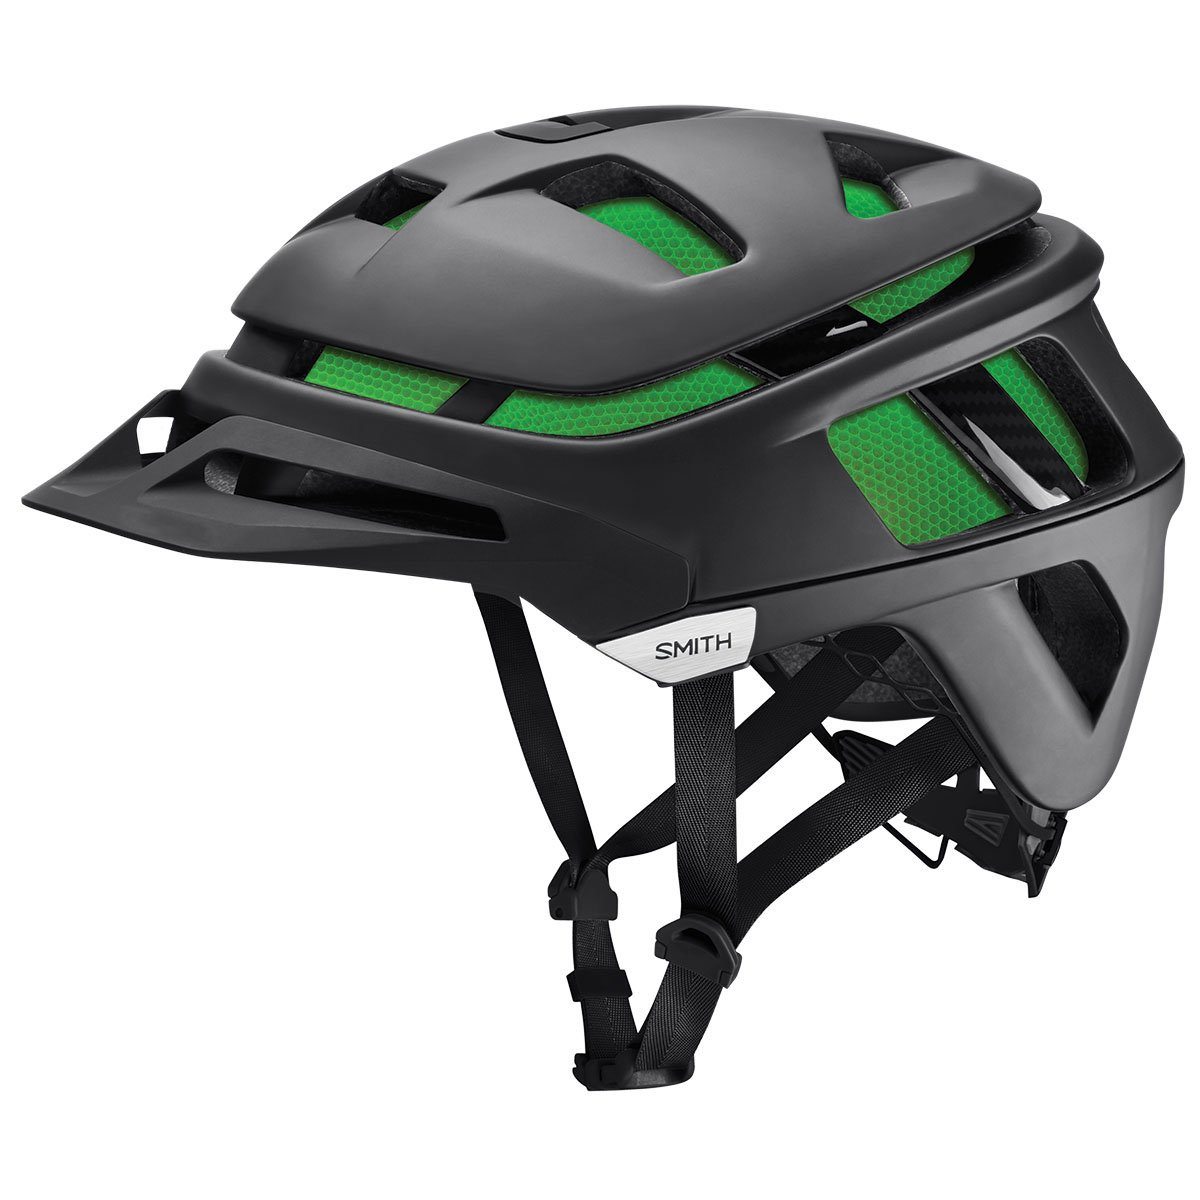 Smith Optics Forefront All Mountain Bike Helmet